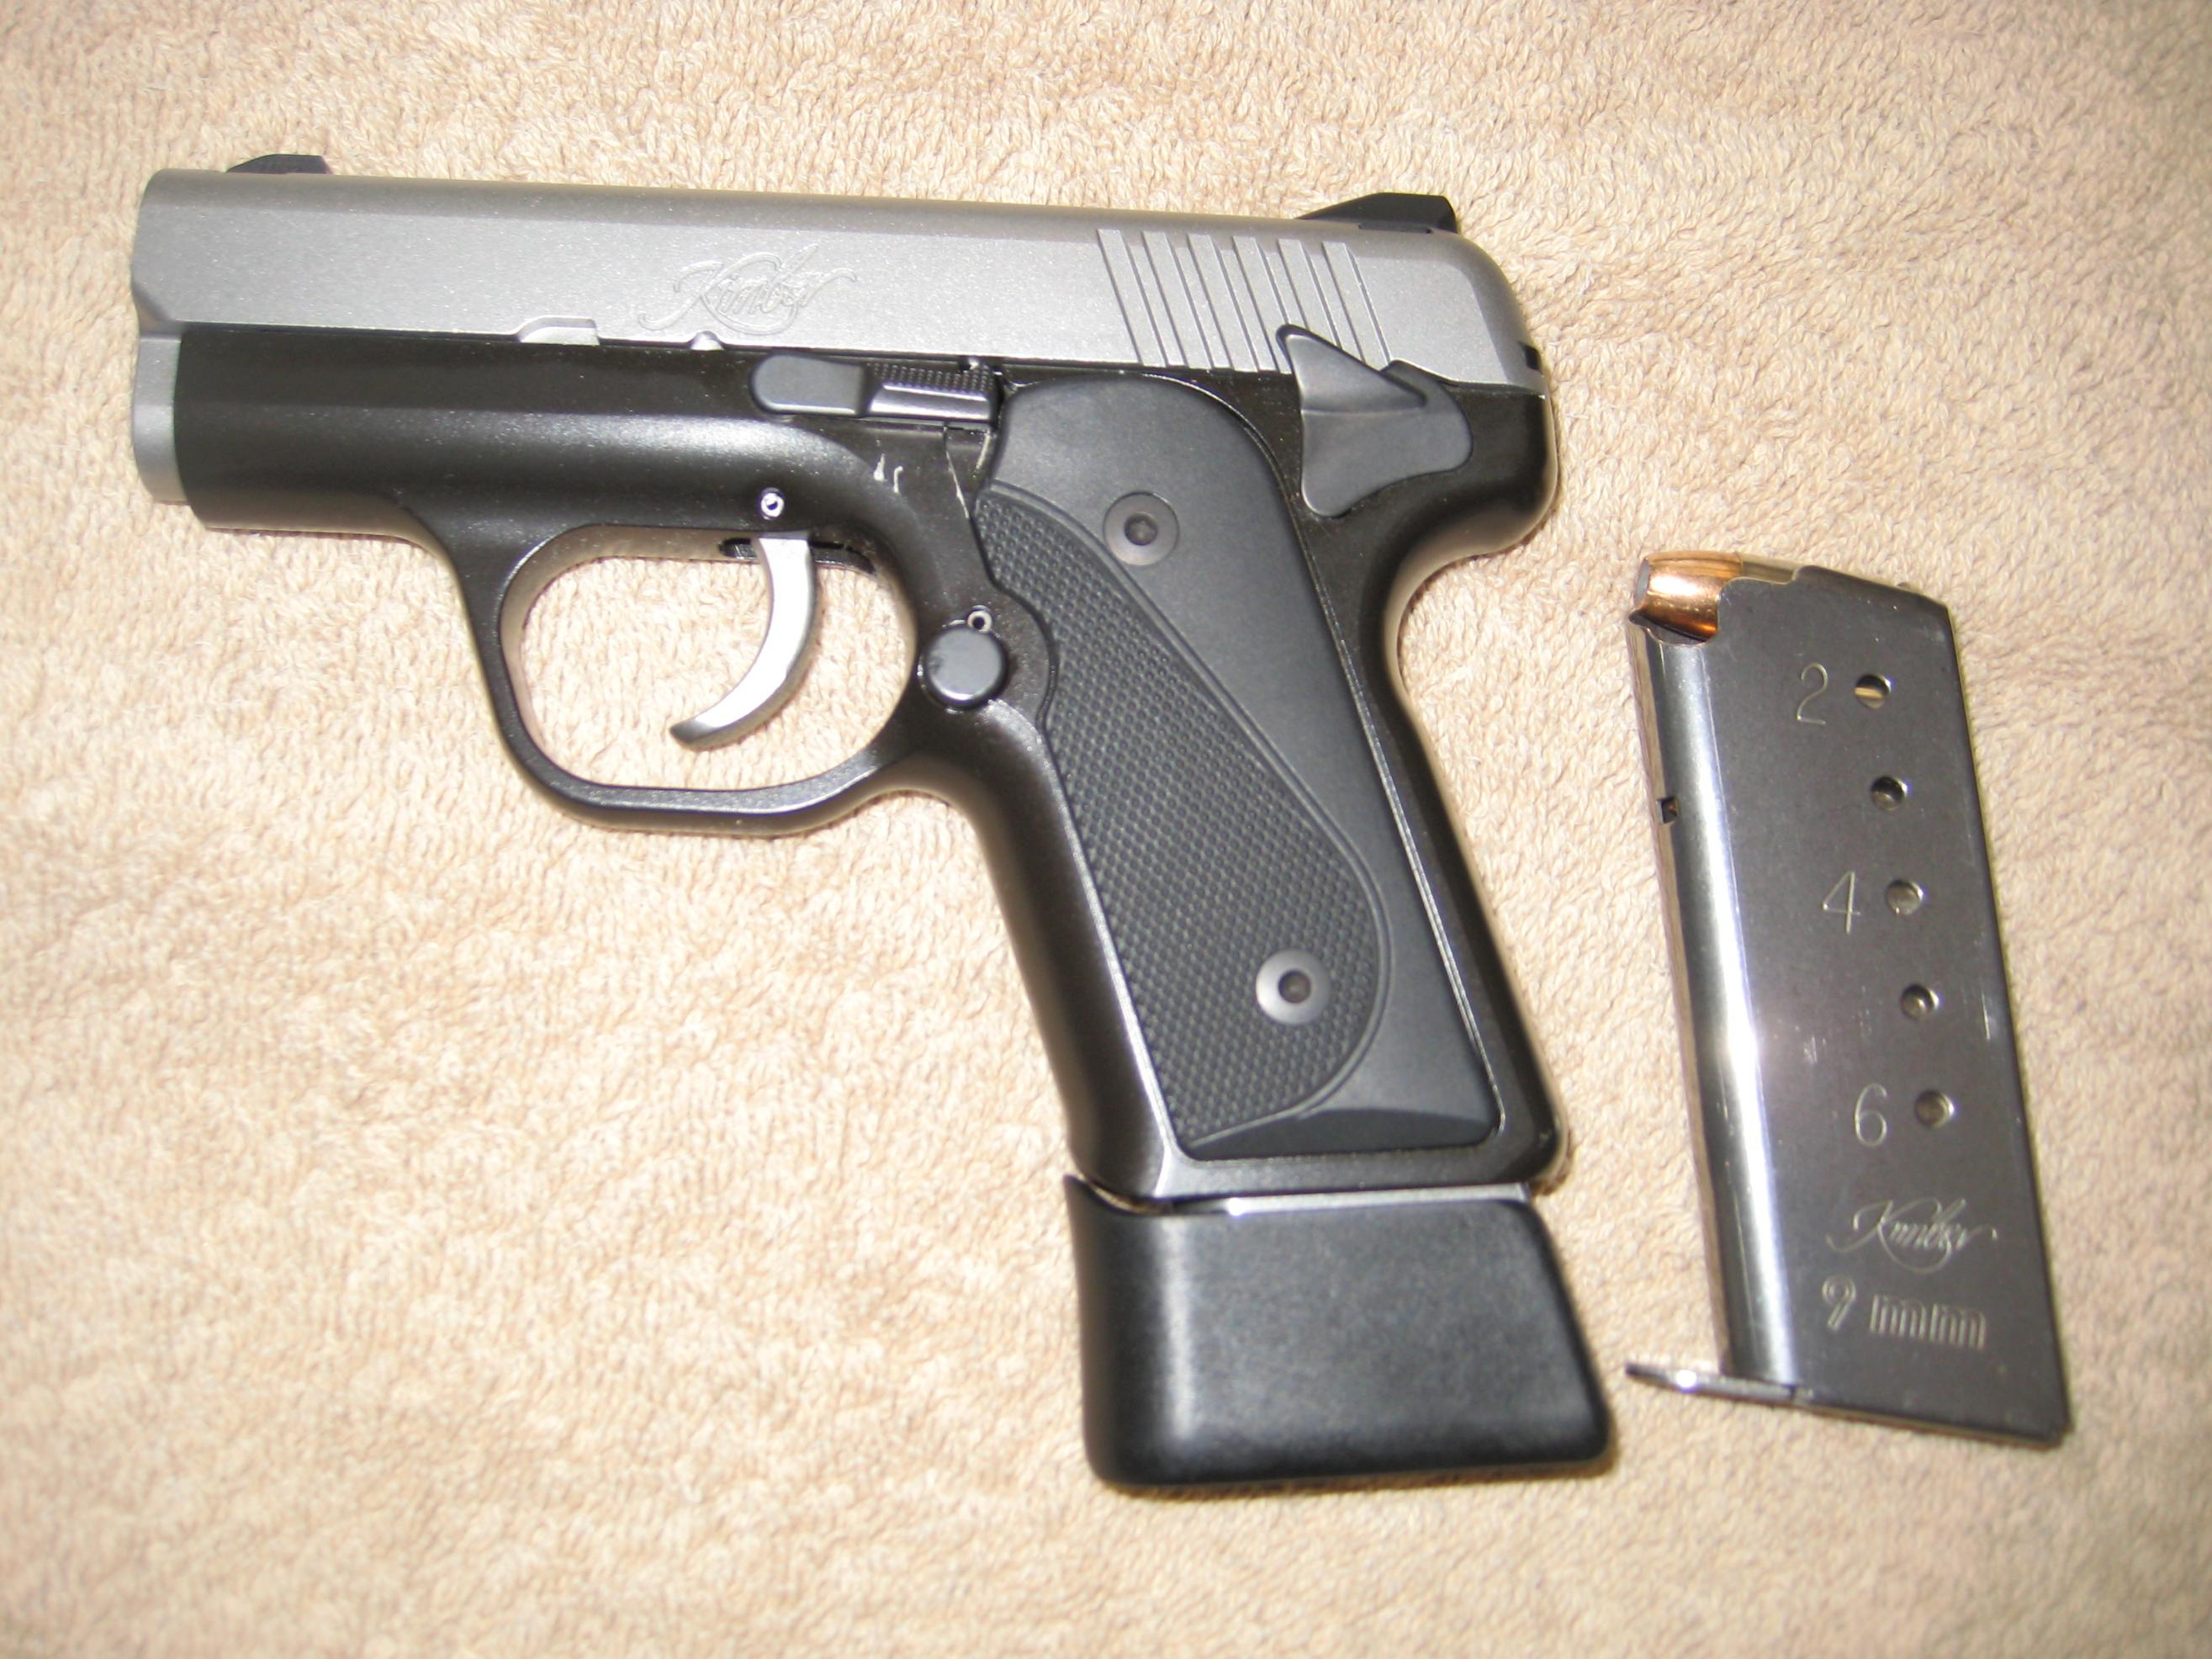 Kimber solo jamming issues